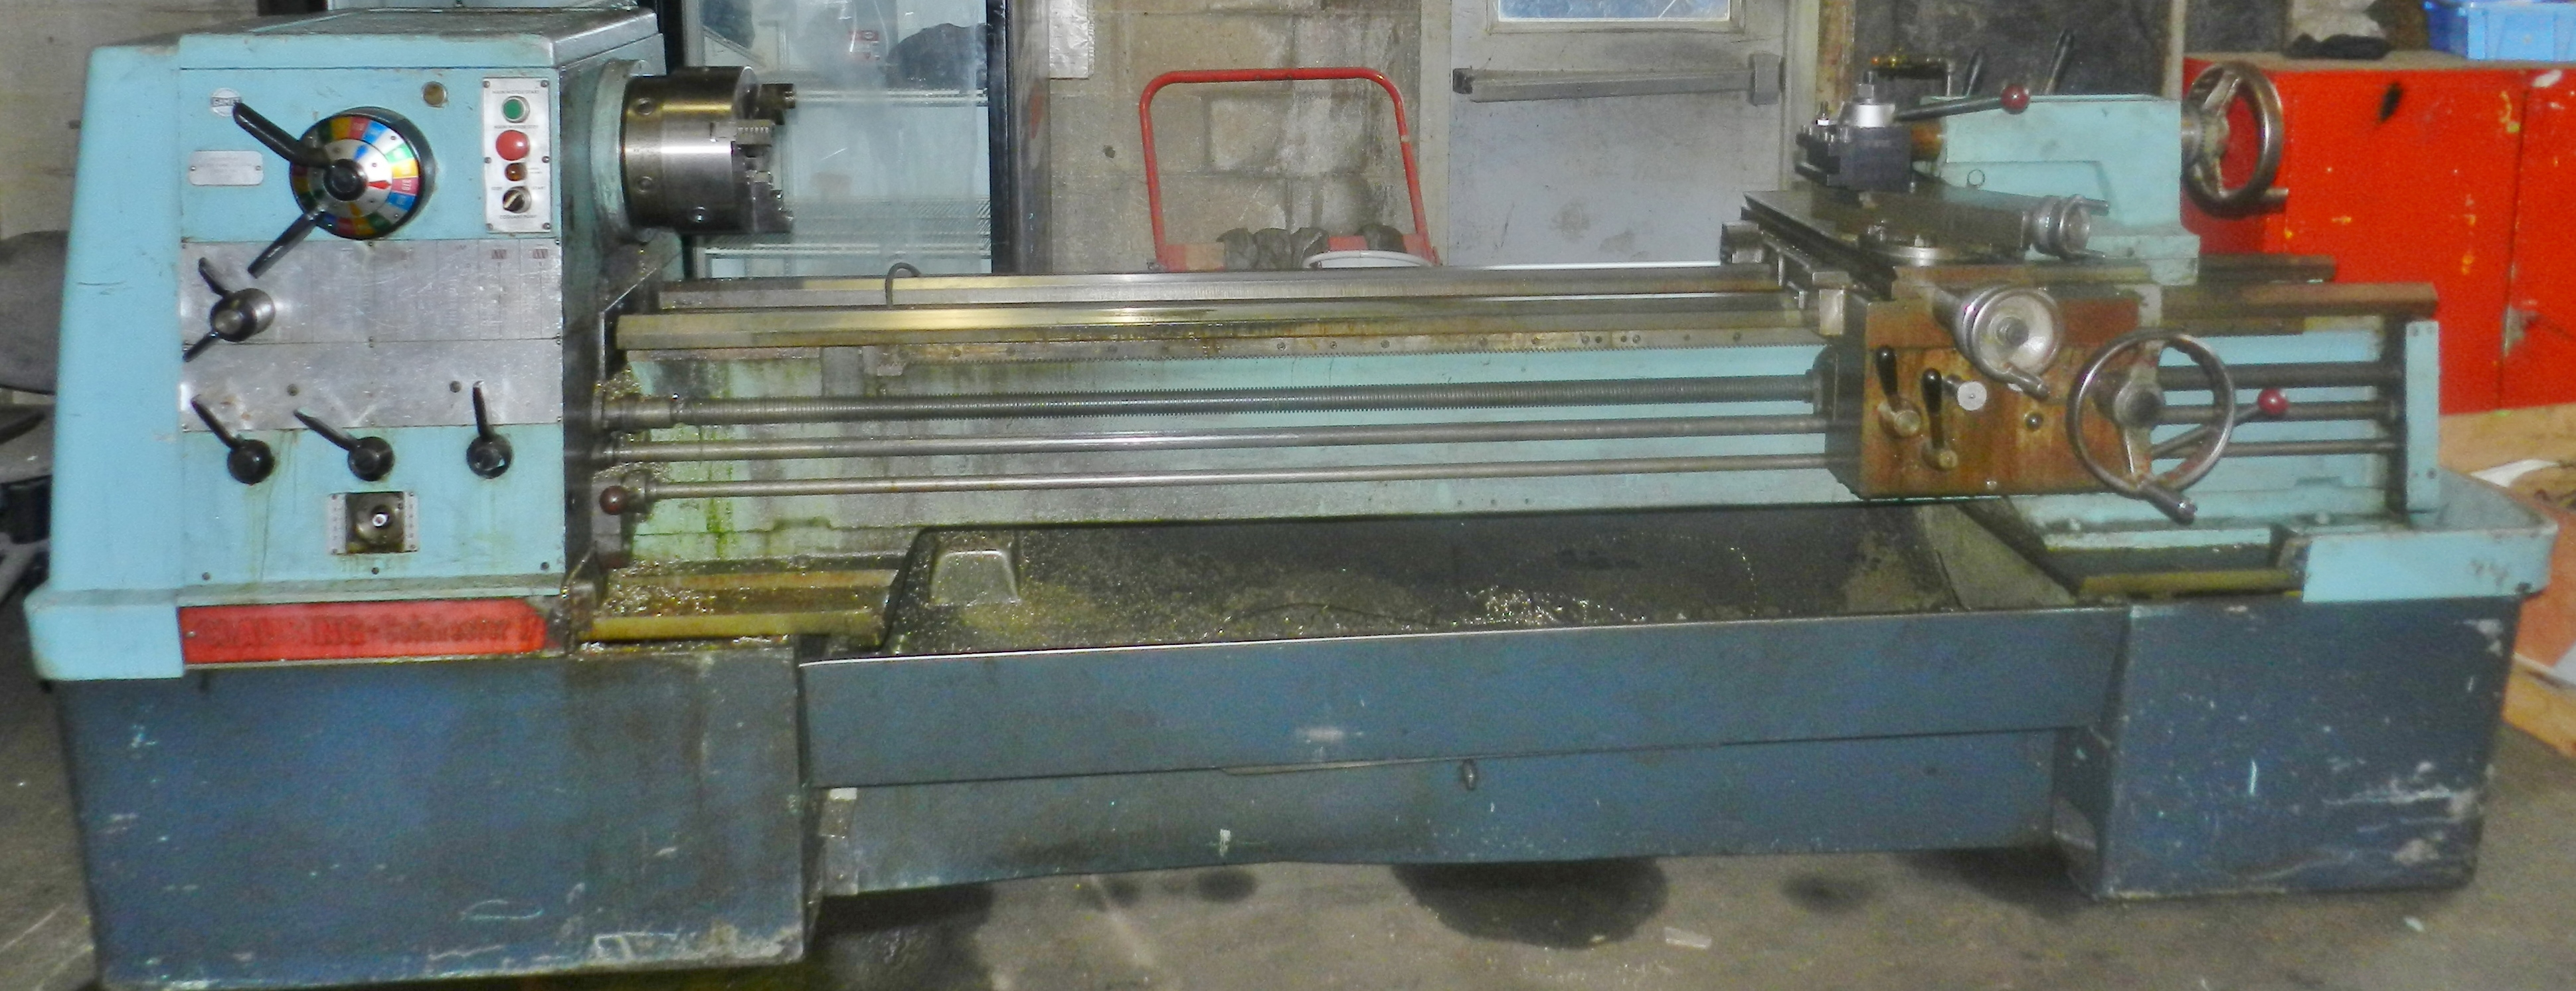 "Lot 63 - Clausing Colchester 17"" x 80"" Gap Bed Engine Lathe"